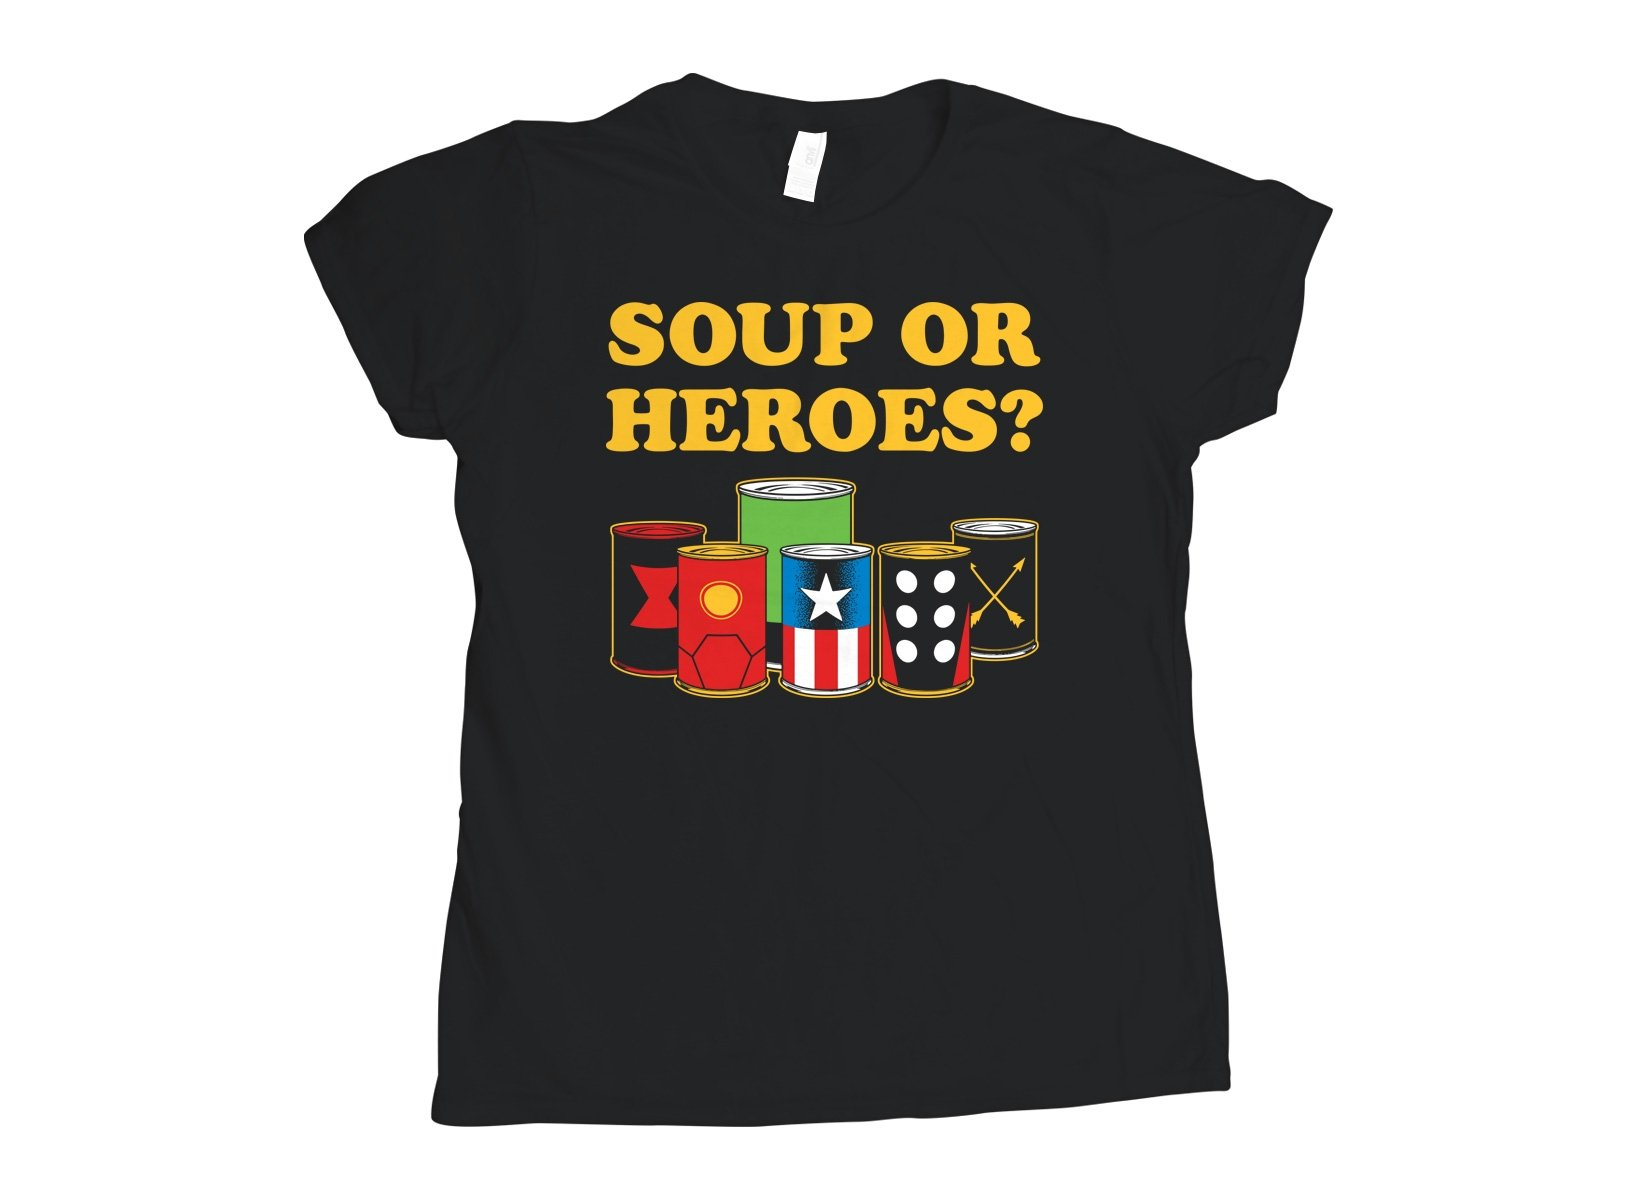 Soup Or Heroes? on Womens T-Shirt